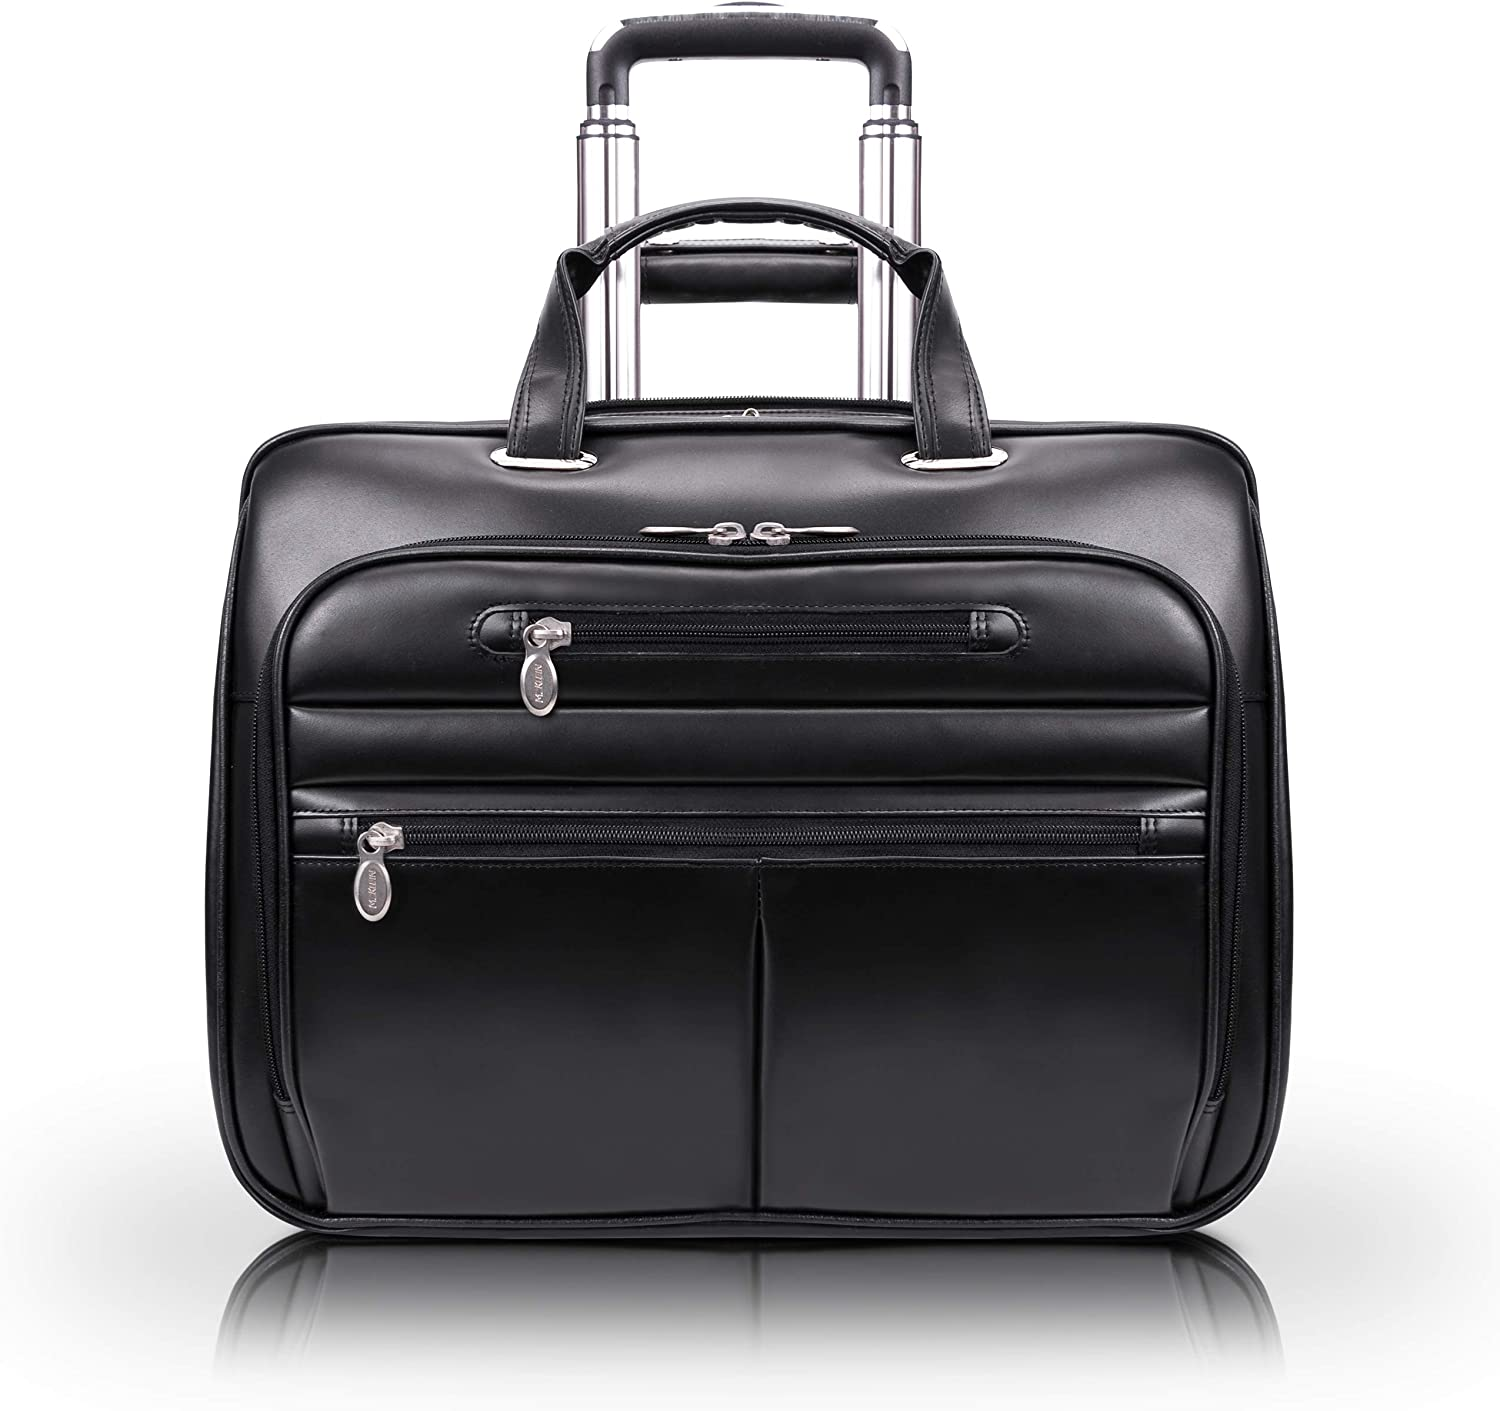 McKlein USA Wrightwood Wheeled 17 Inch Laptop Case